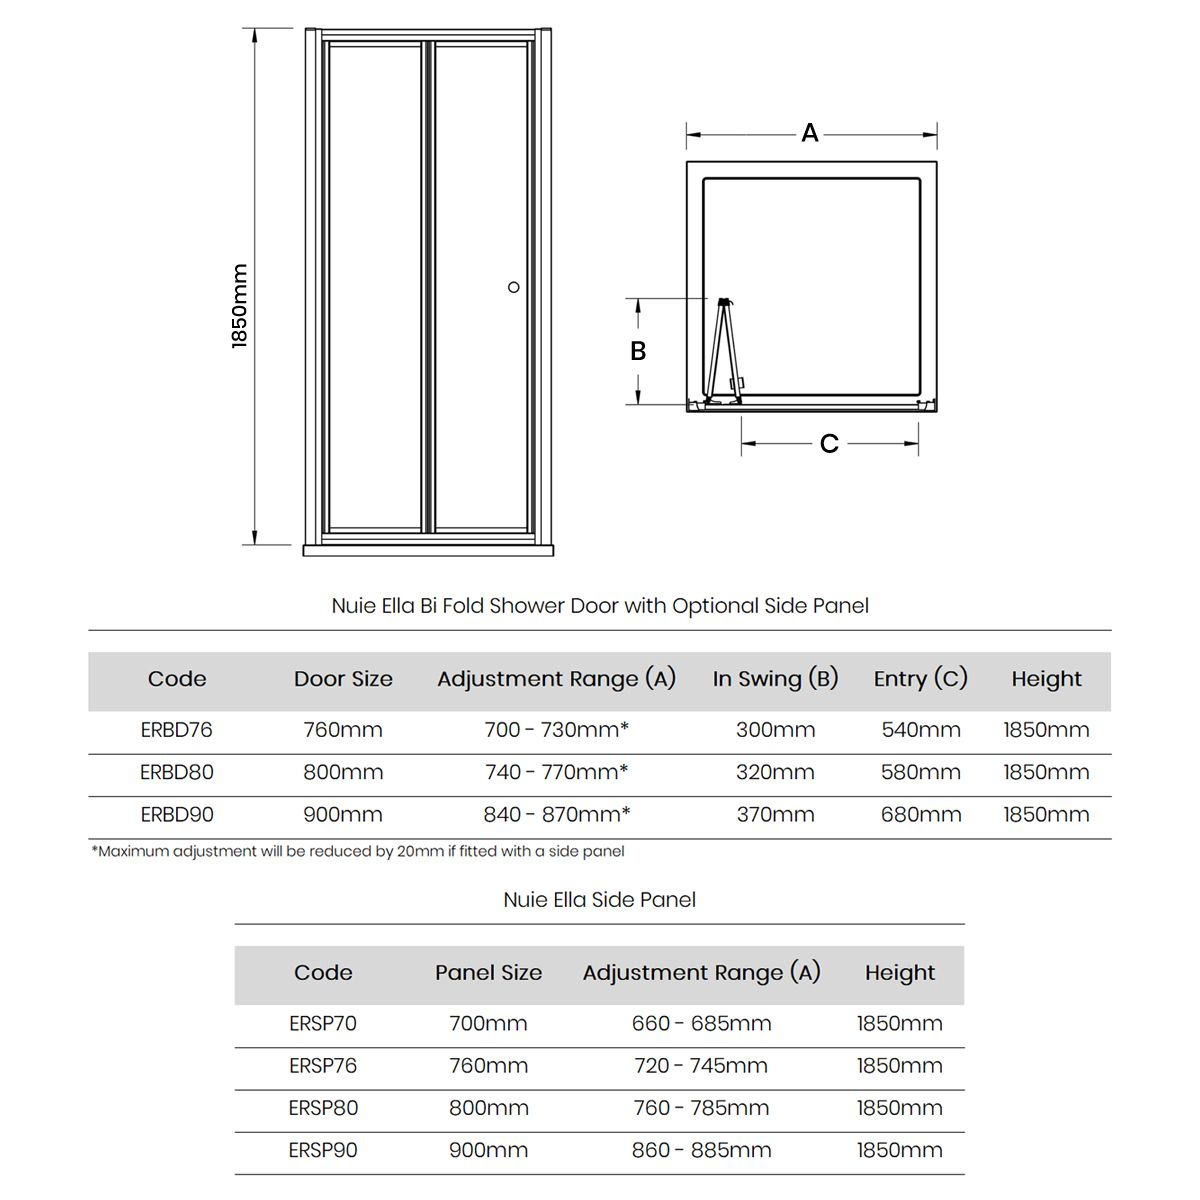 Premier Ella Bi Fold Shower Enclosure Dimensions